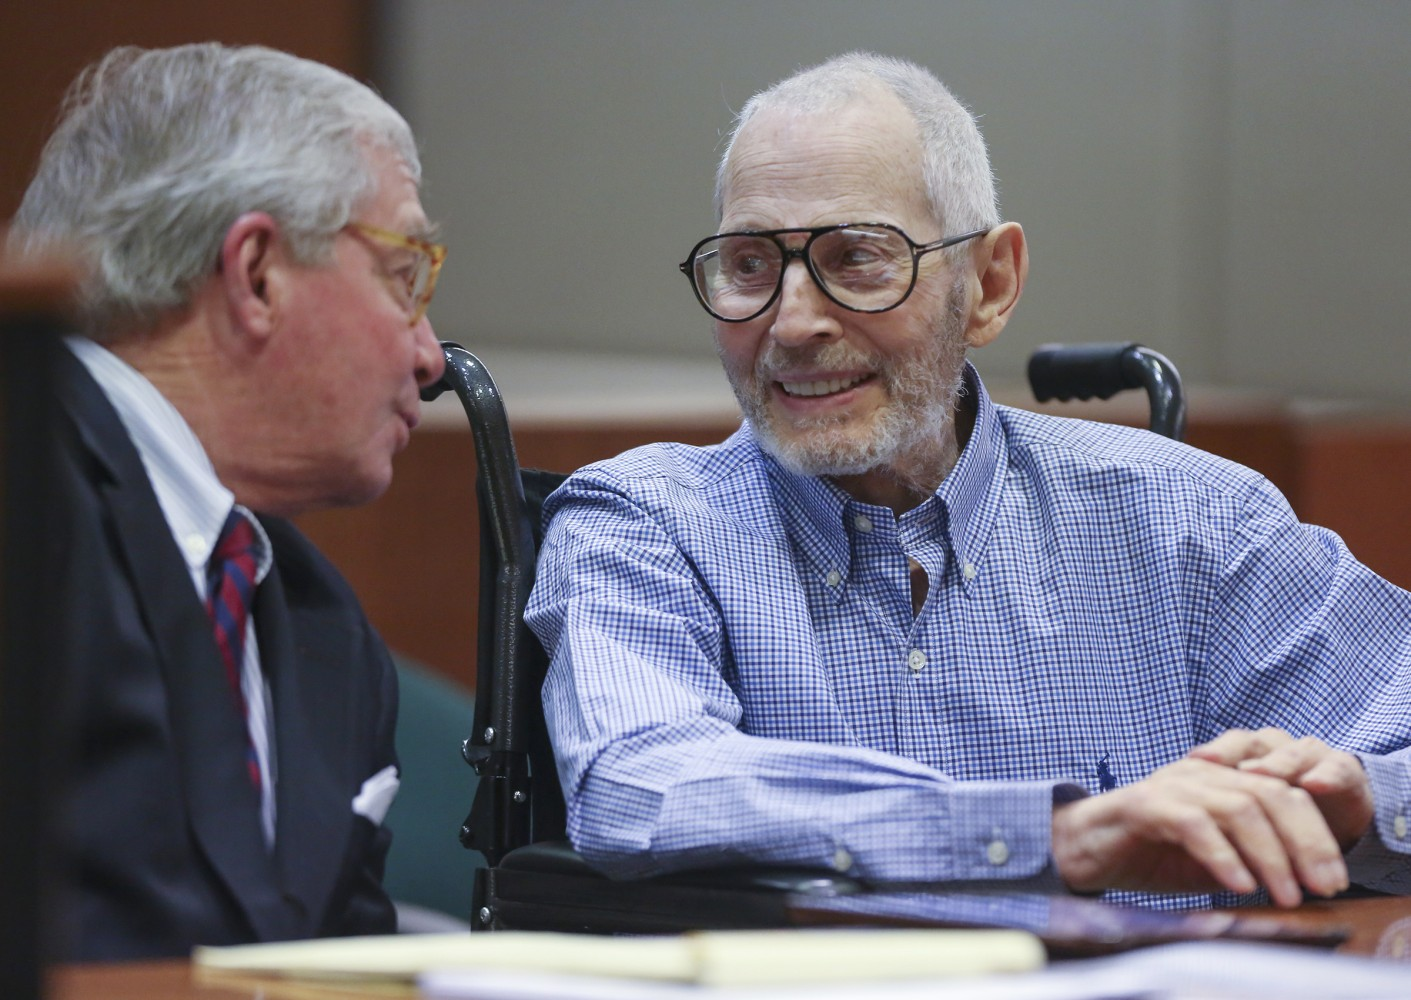 Retired NYC Detective: Robert Durst's Wife Told Neighbor of Beating, Threats